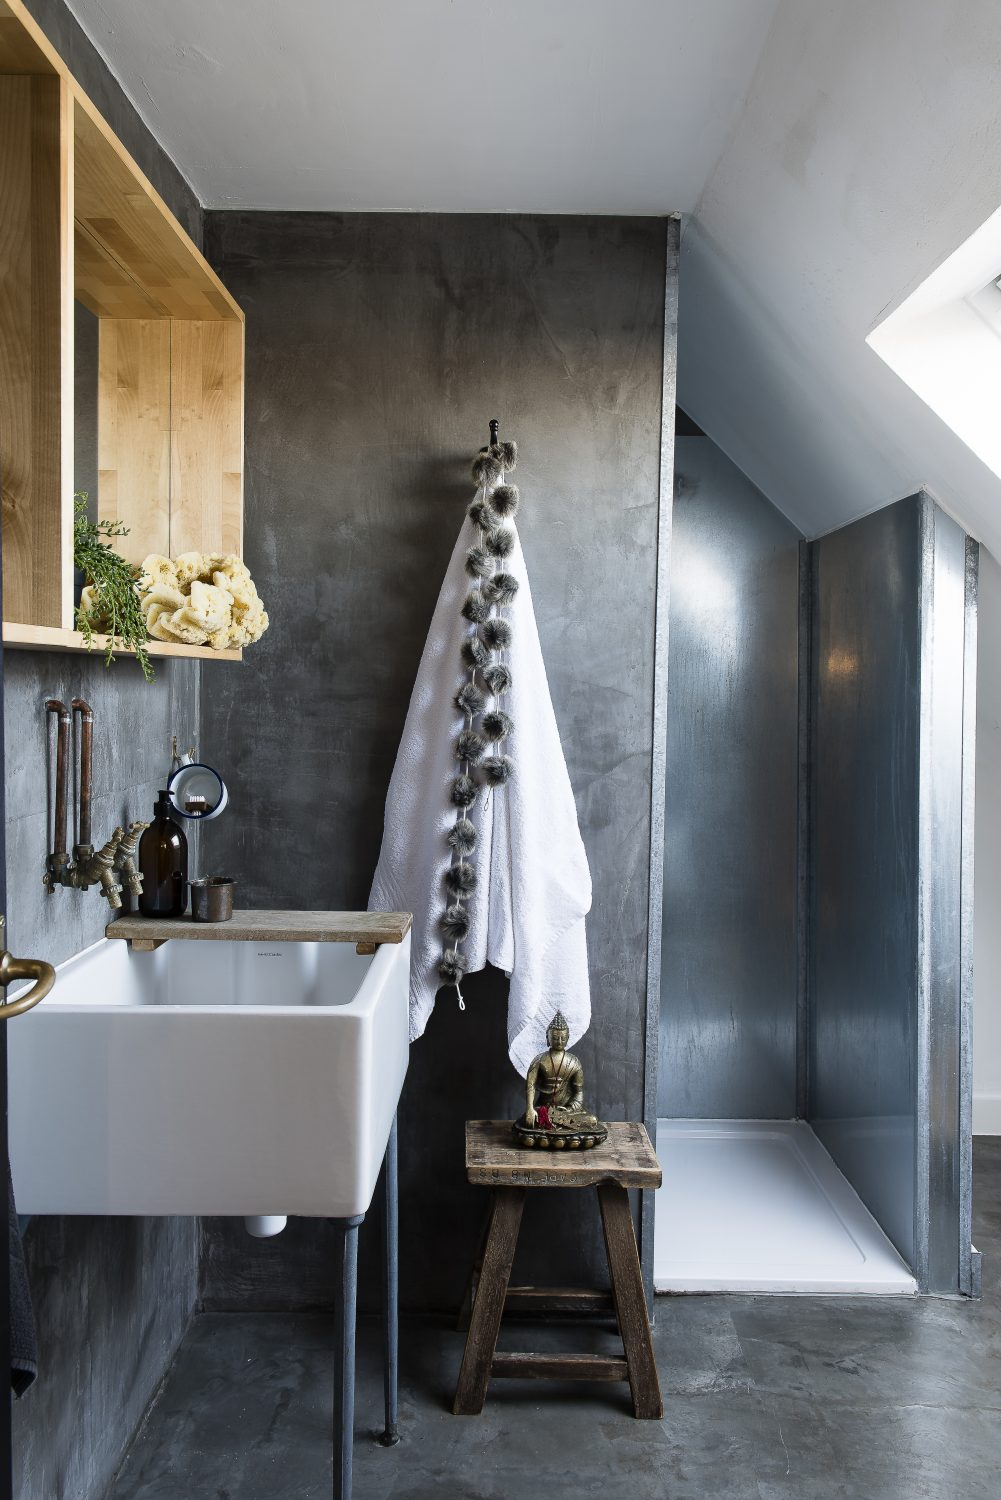 The shower enclosure in the downstairs bathroom is made from galvanised steel. The walls and floor are concrete screed